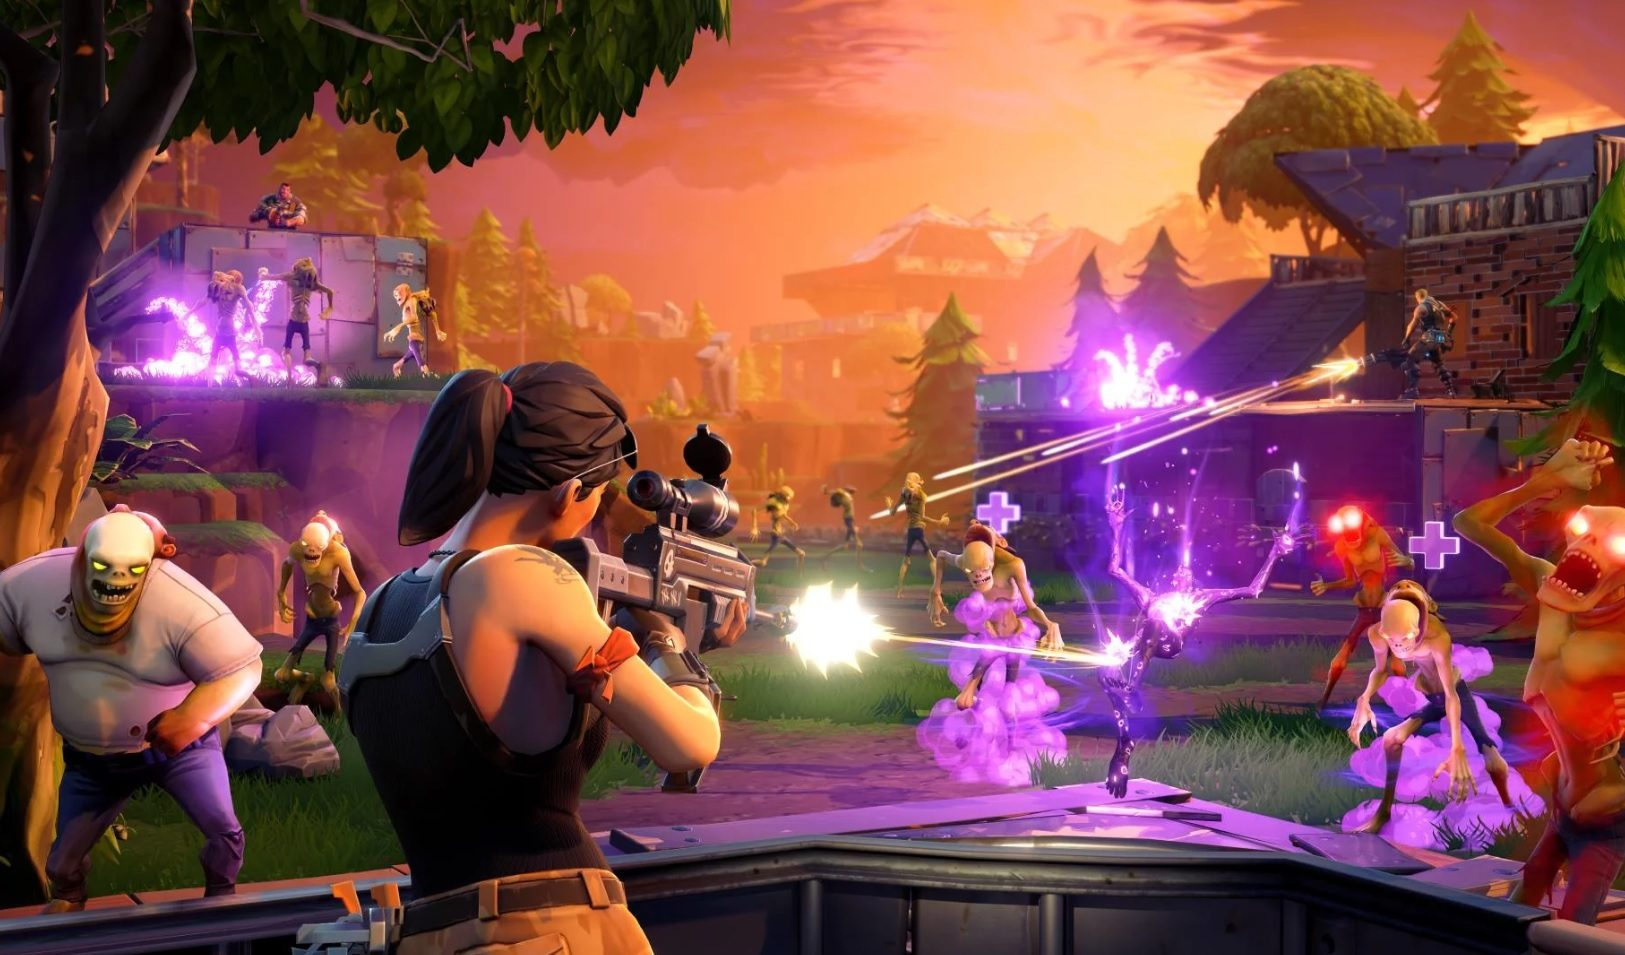 Former Epic director says he wanted to cancel Fortnite when